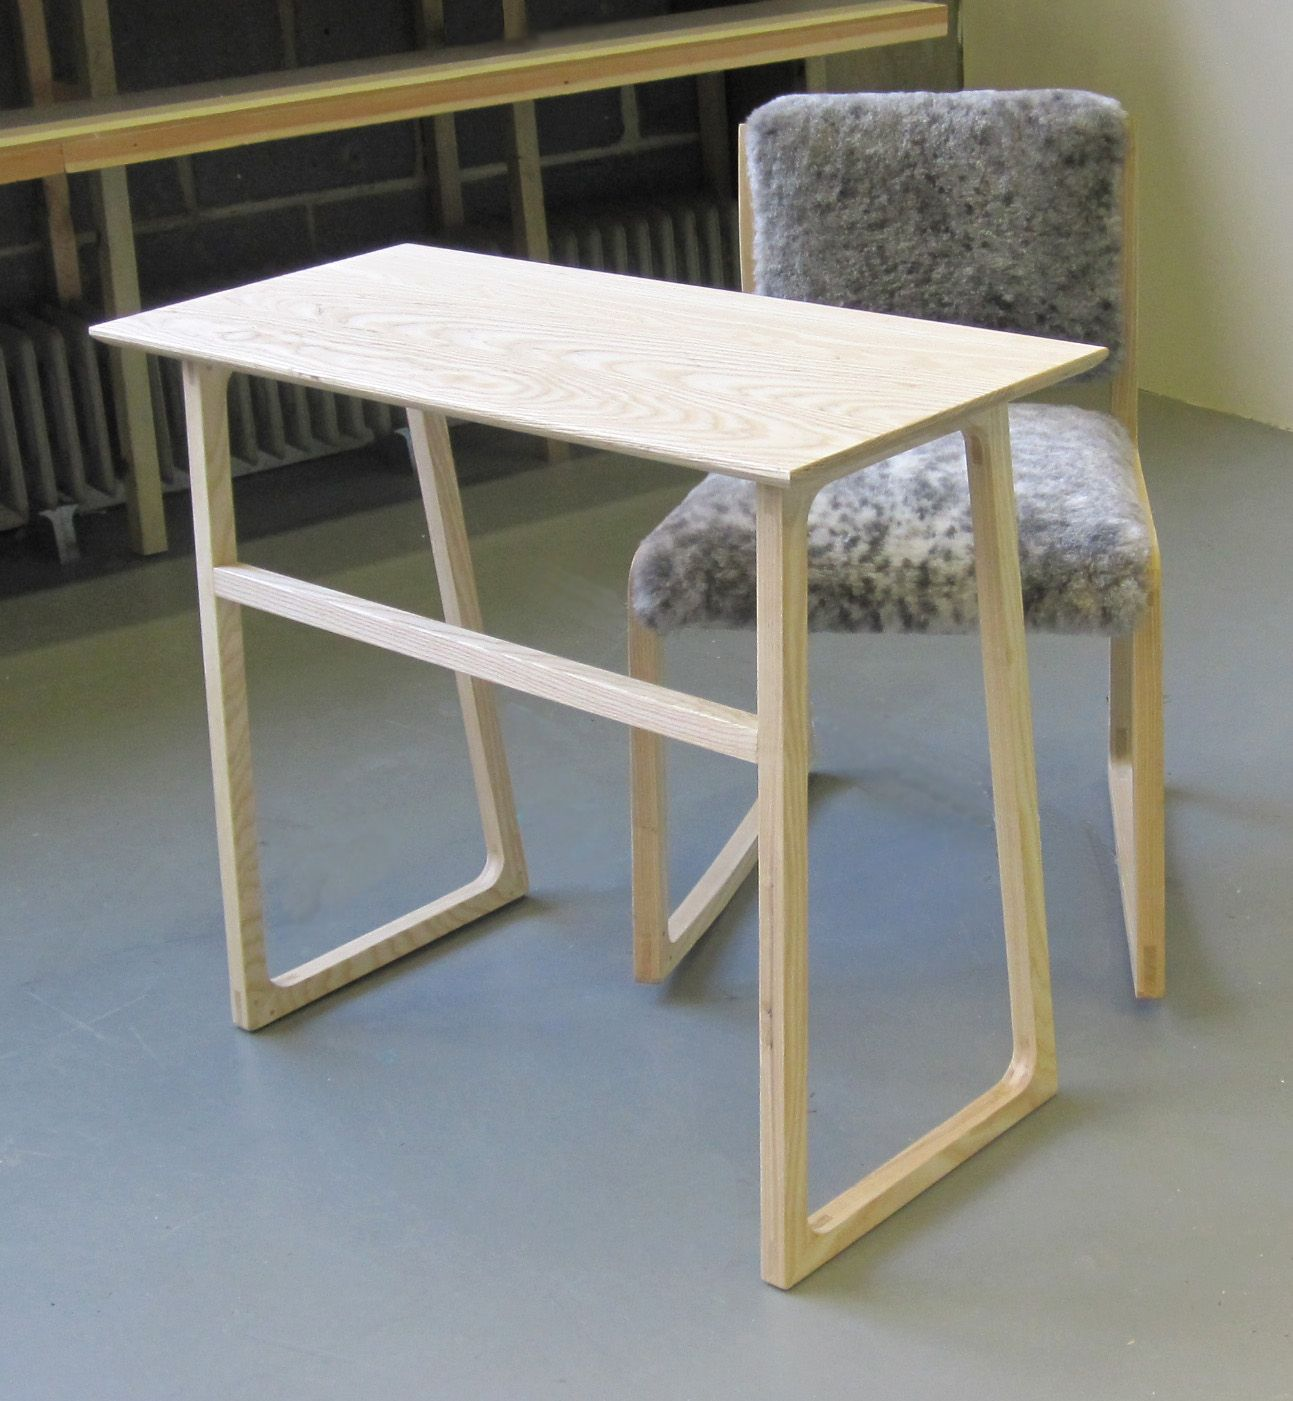 A work chair that rocks the fidget and matching desk (prototypes) by Lindsay & A work chair that rocks: the fidget and matching desk (prototypes ...